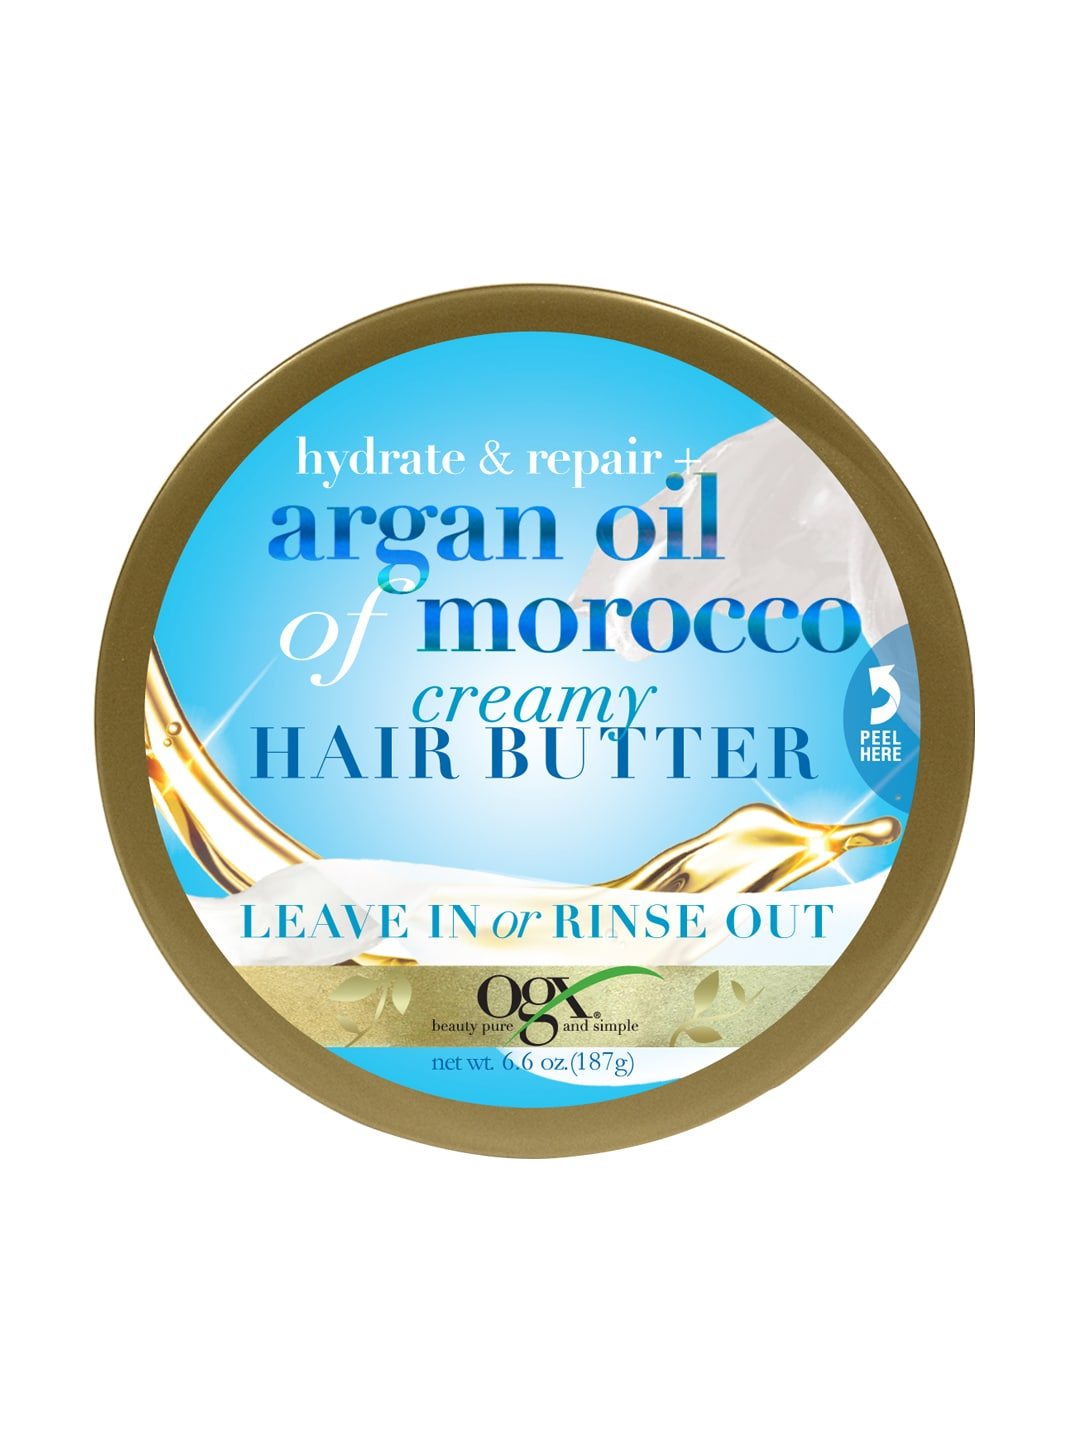 OGX Unisex Argan Oil of Morocco Creamy Hair Butter image